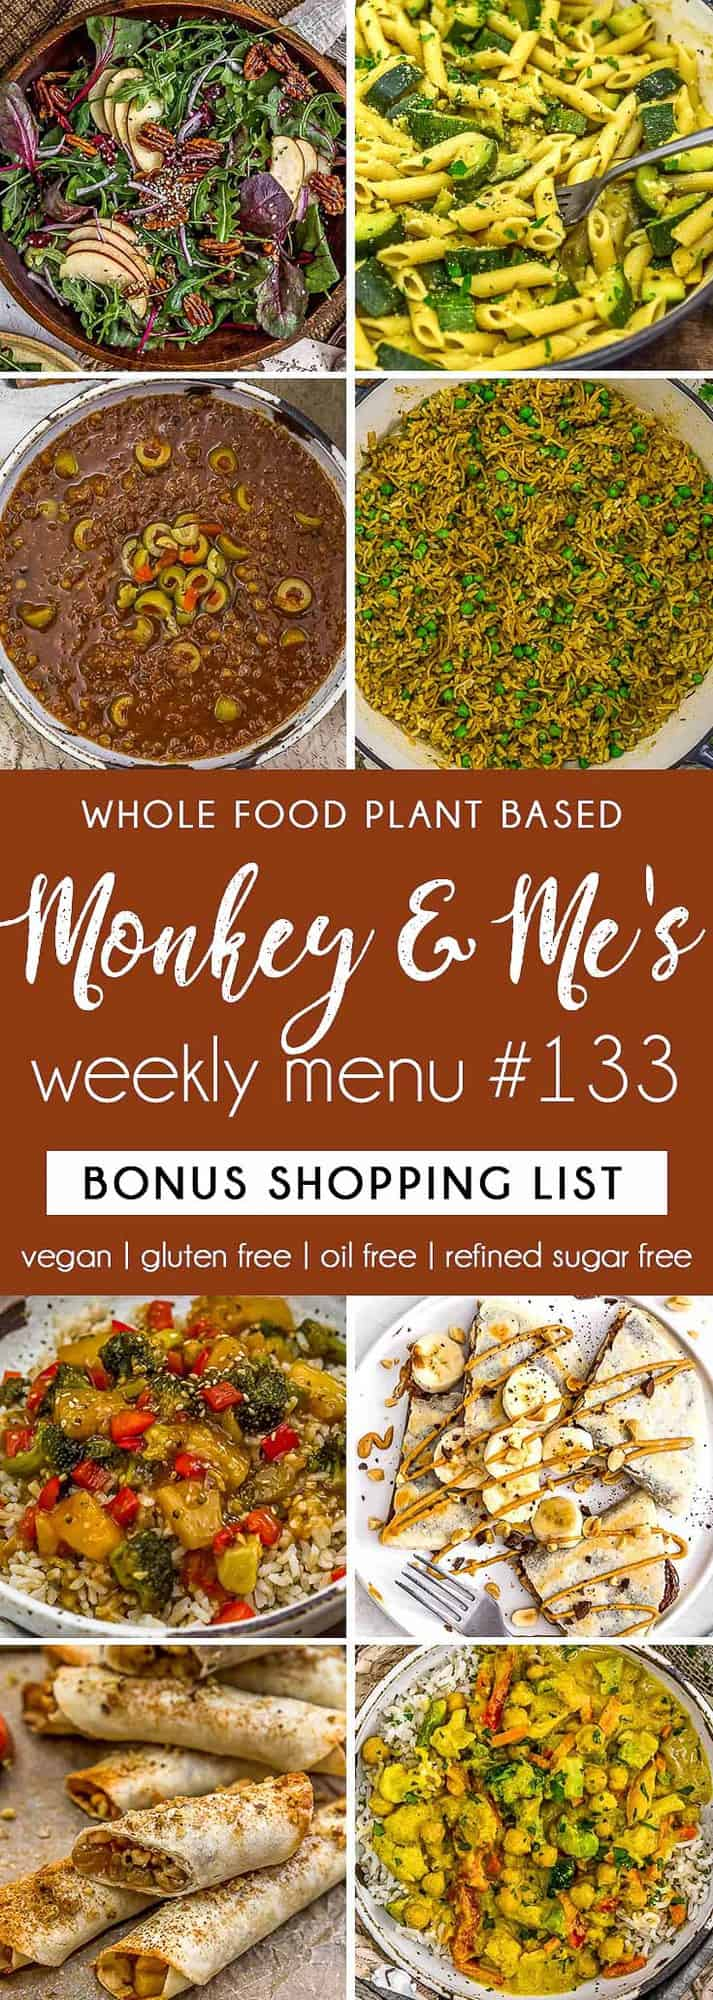 Monkey and Me's Menu 133 featuring 8 recipes